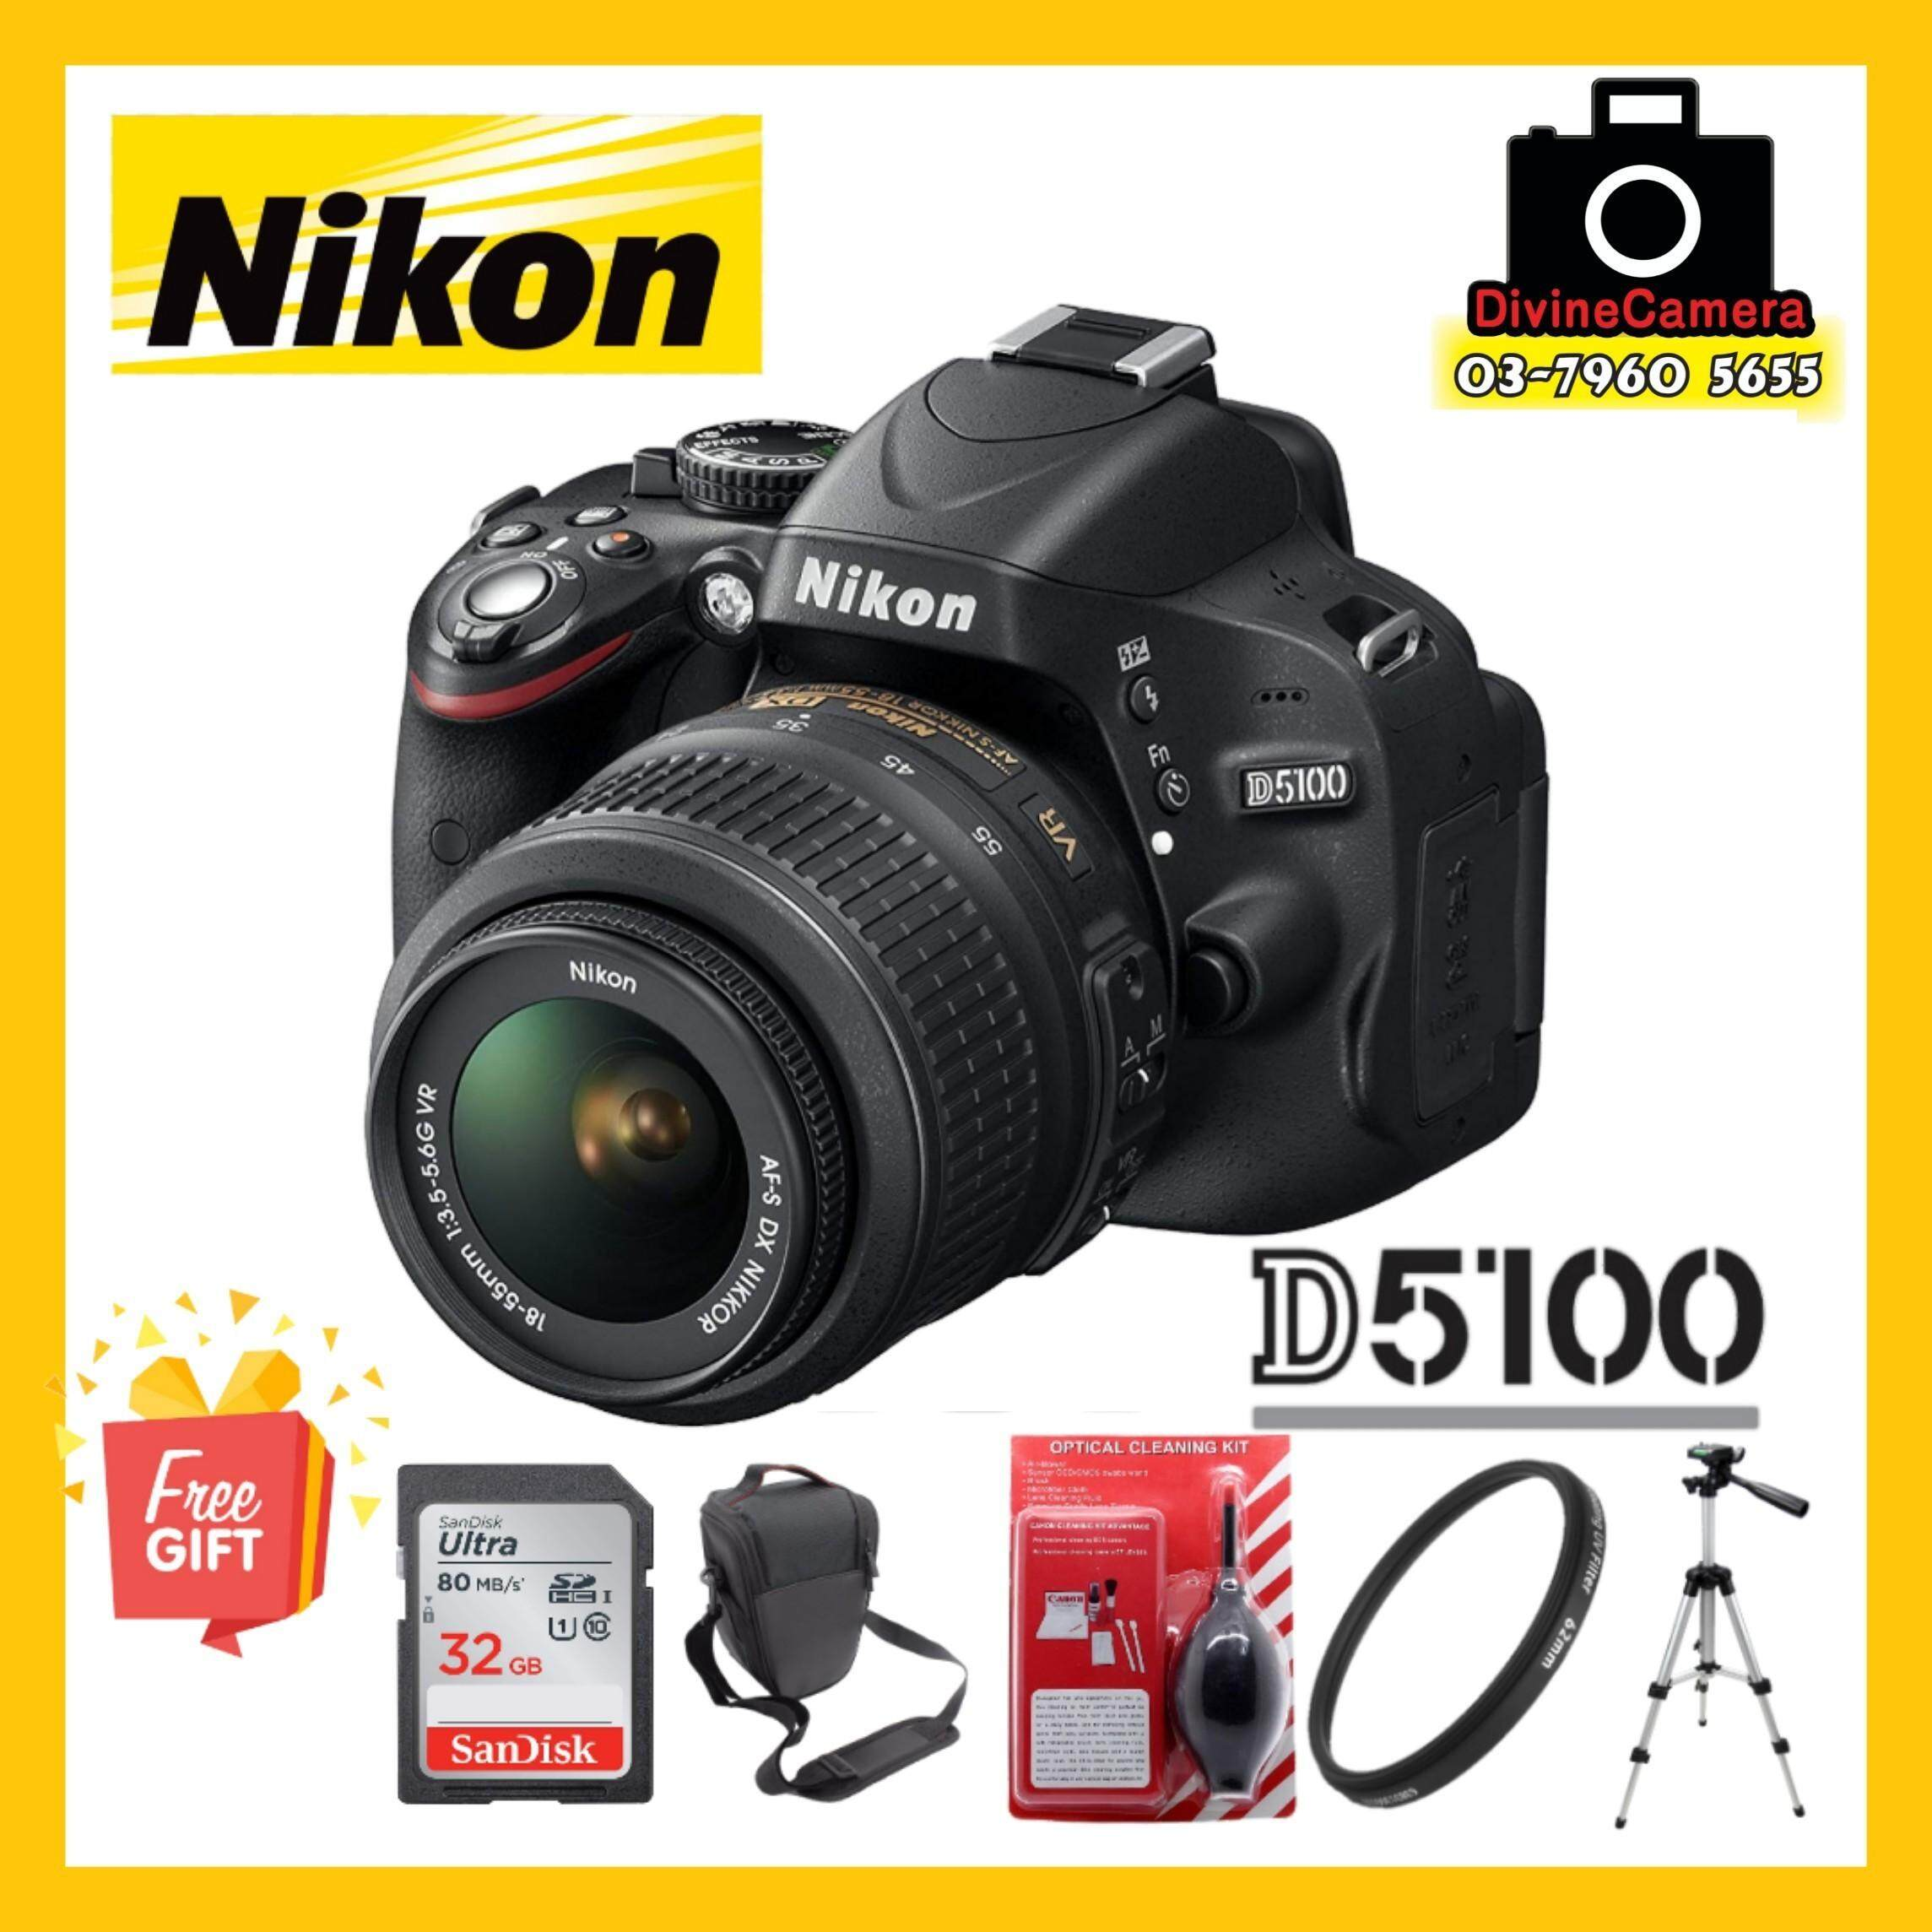 NIkon D5100 18-55mm f/3.5-5.6 kit DSLR Camera